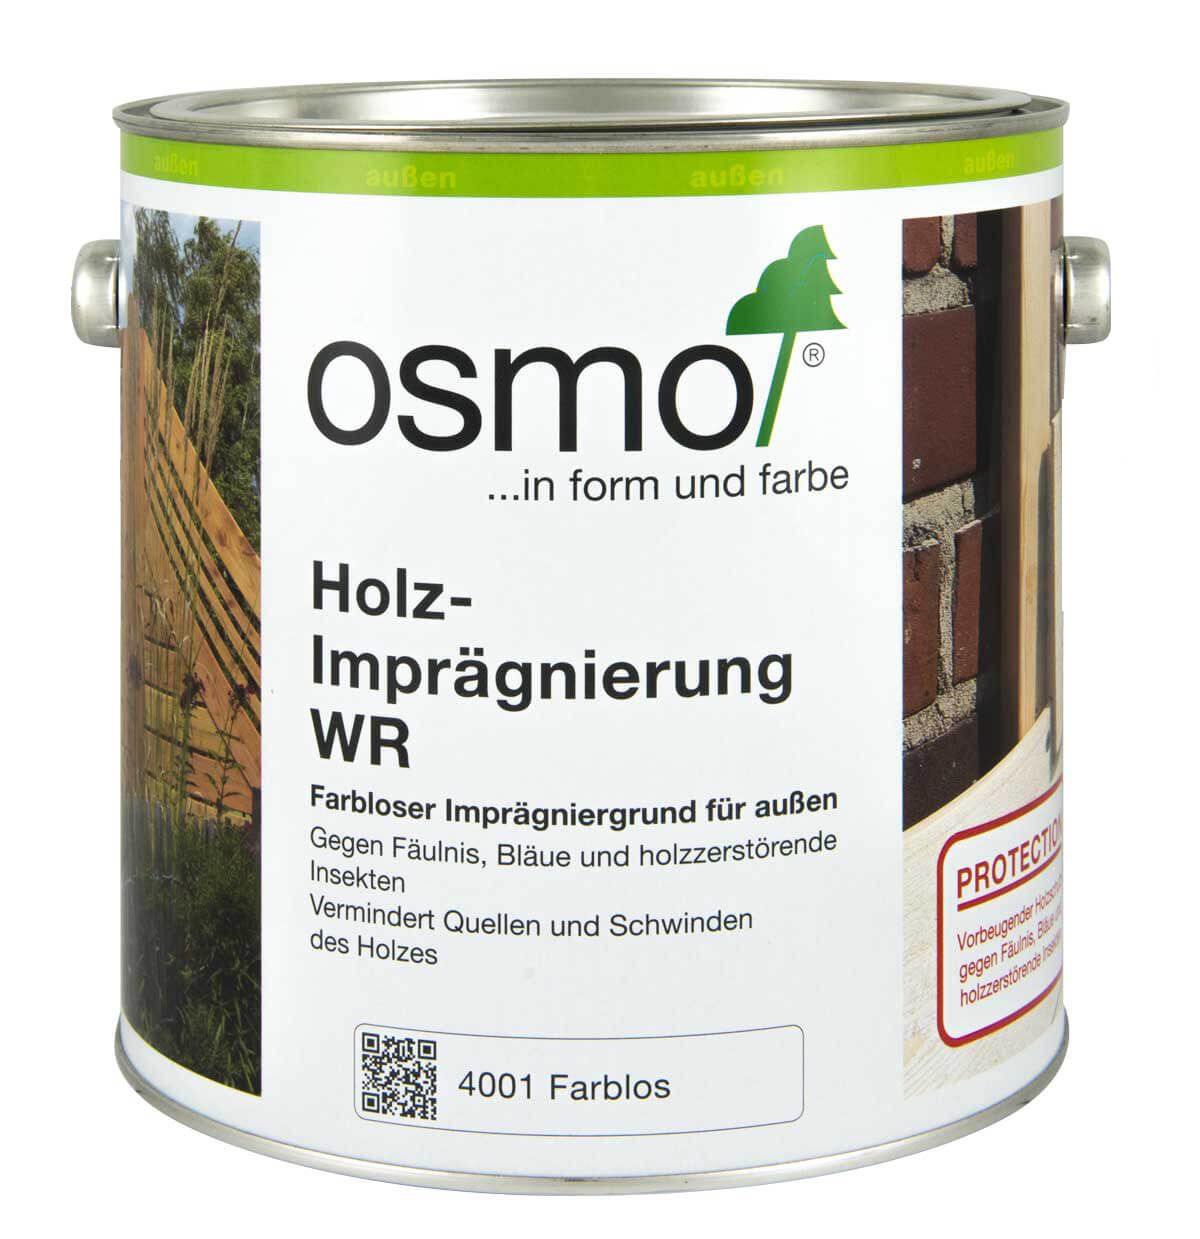 osmo holzimpr gnierung wr 4001 farblos adelsberger holz. Black Bedroom Furniture Sets. Home Design Ideas